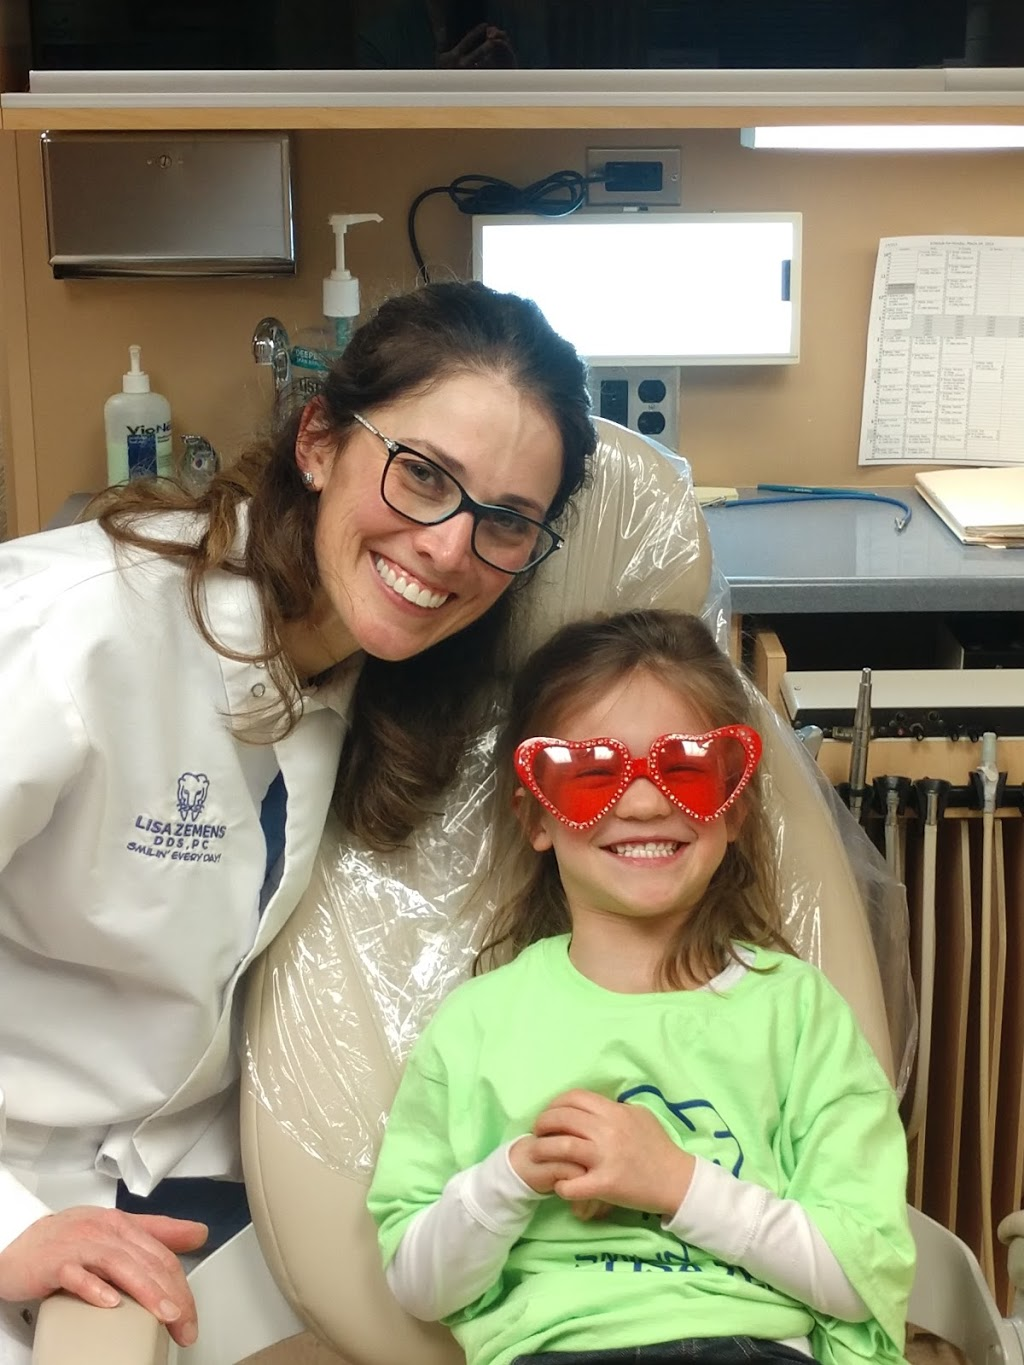 Lisa Zemens PC | dentist | 30795 23 Mile Rd # 203, Chesterfield, MI 48047, USA | 5869494630 OR +1 586-949-4630